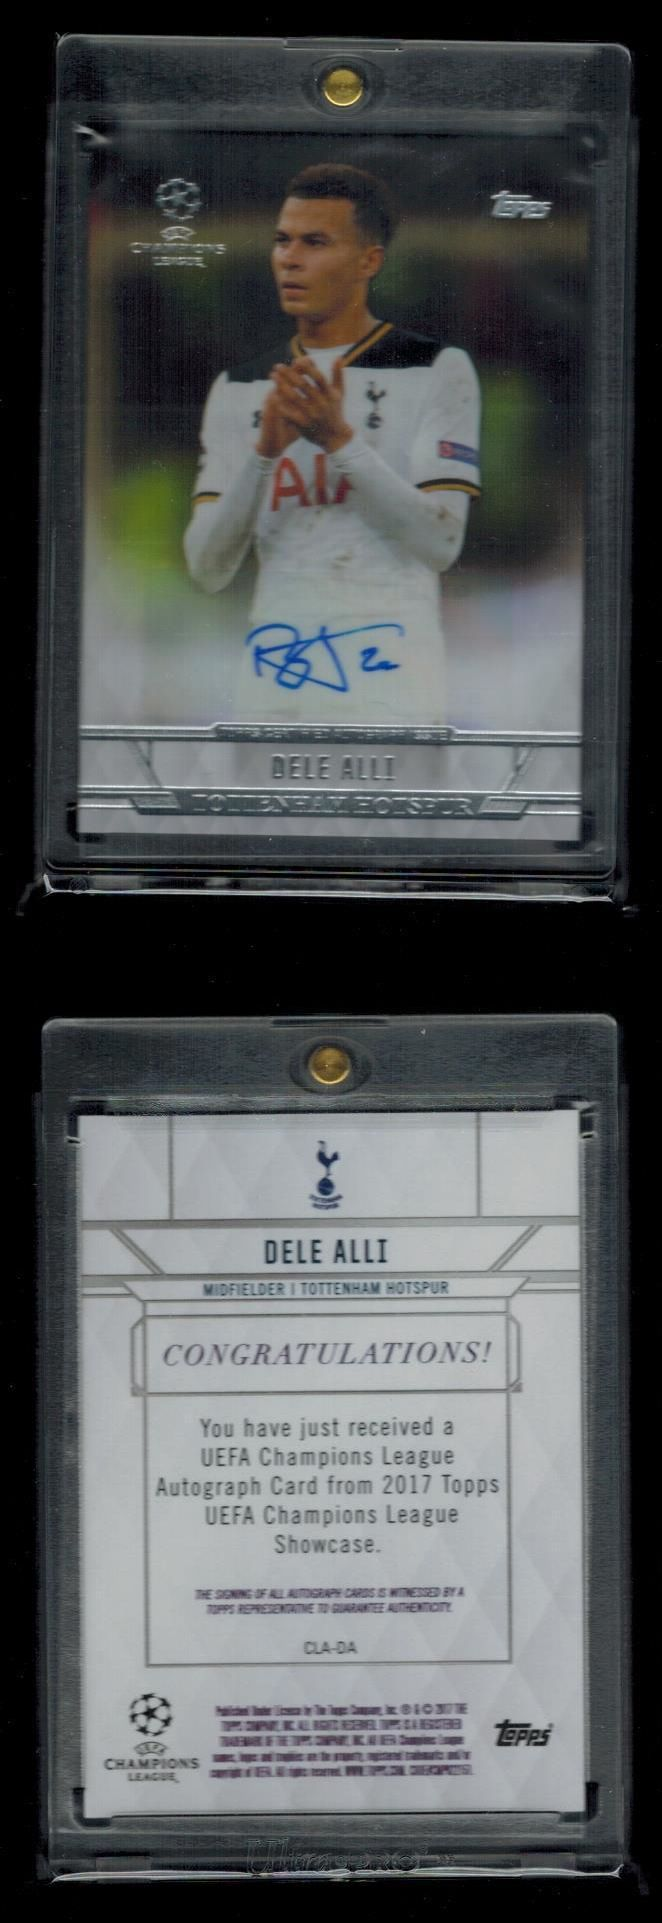 Soccer Cards 183444: 2016-17 Topps Uefa Champions League Base Autograph Auto Dele Alli Ssp -> BUY IT NOW ONLY: $200 on eBay!